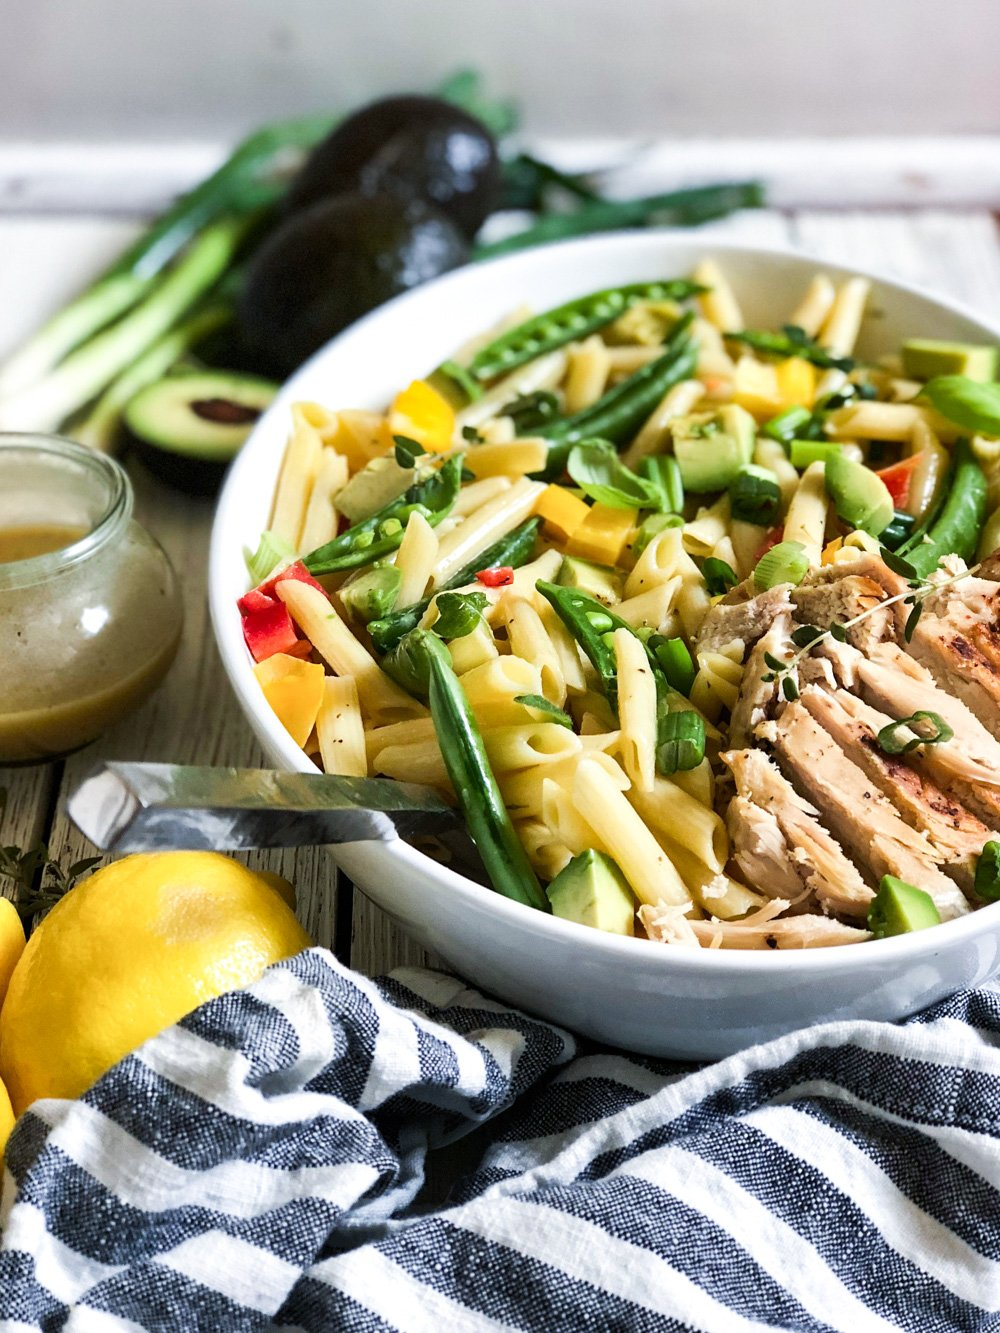 Lifestyle Blogger Chocolate and Lace shares her recipe for Avocado and Honey Dijon Pasta Salad.